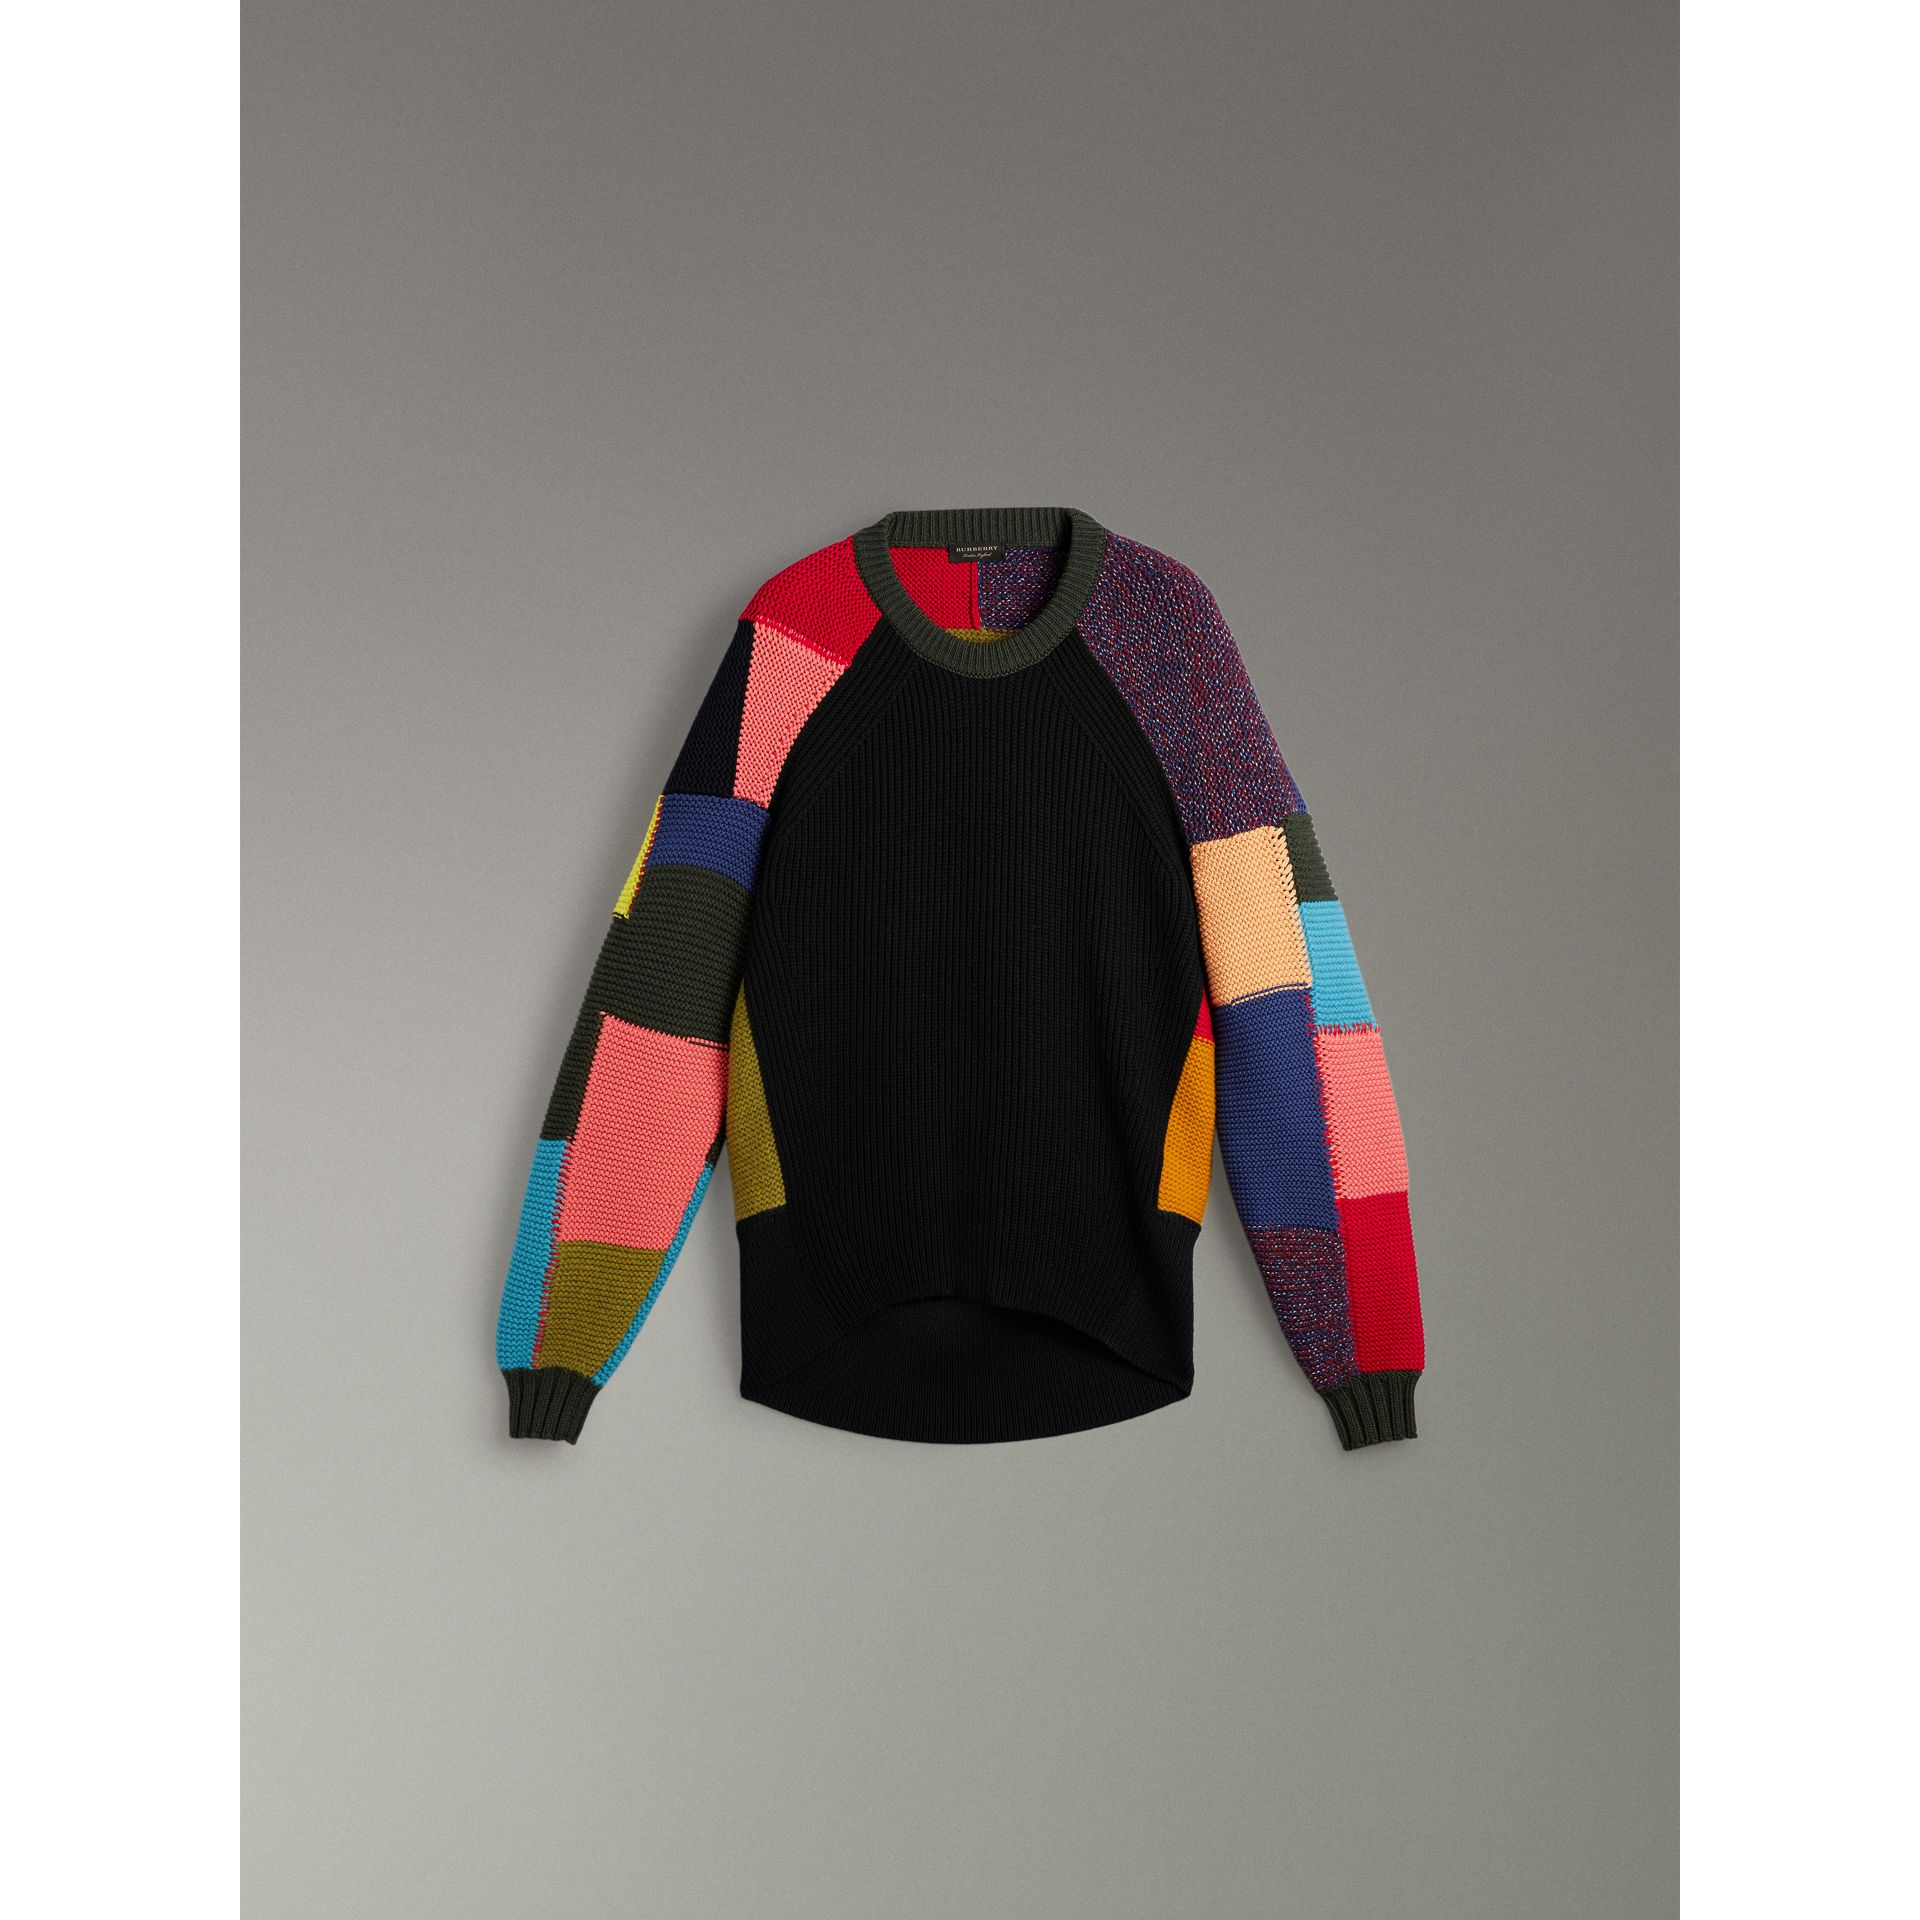 Patchwork Wool Cashmere Blend Sweater in Multicolour - Women | Burberry United Kingdom - gallery image 3